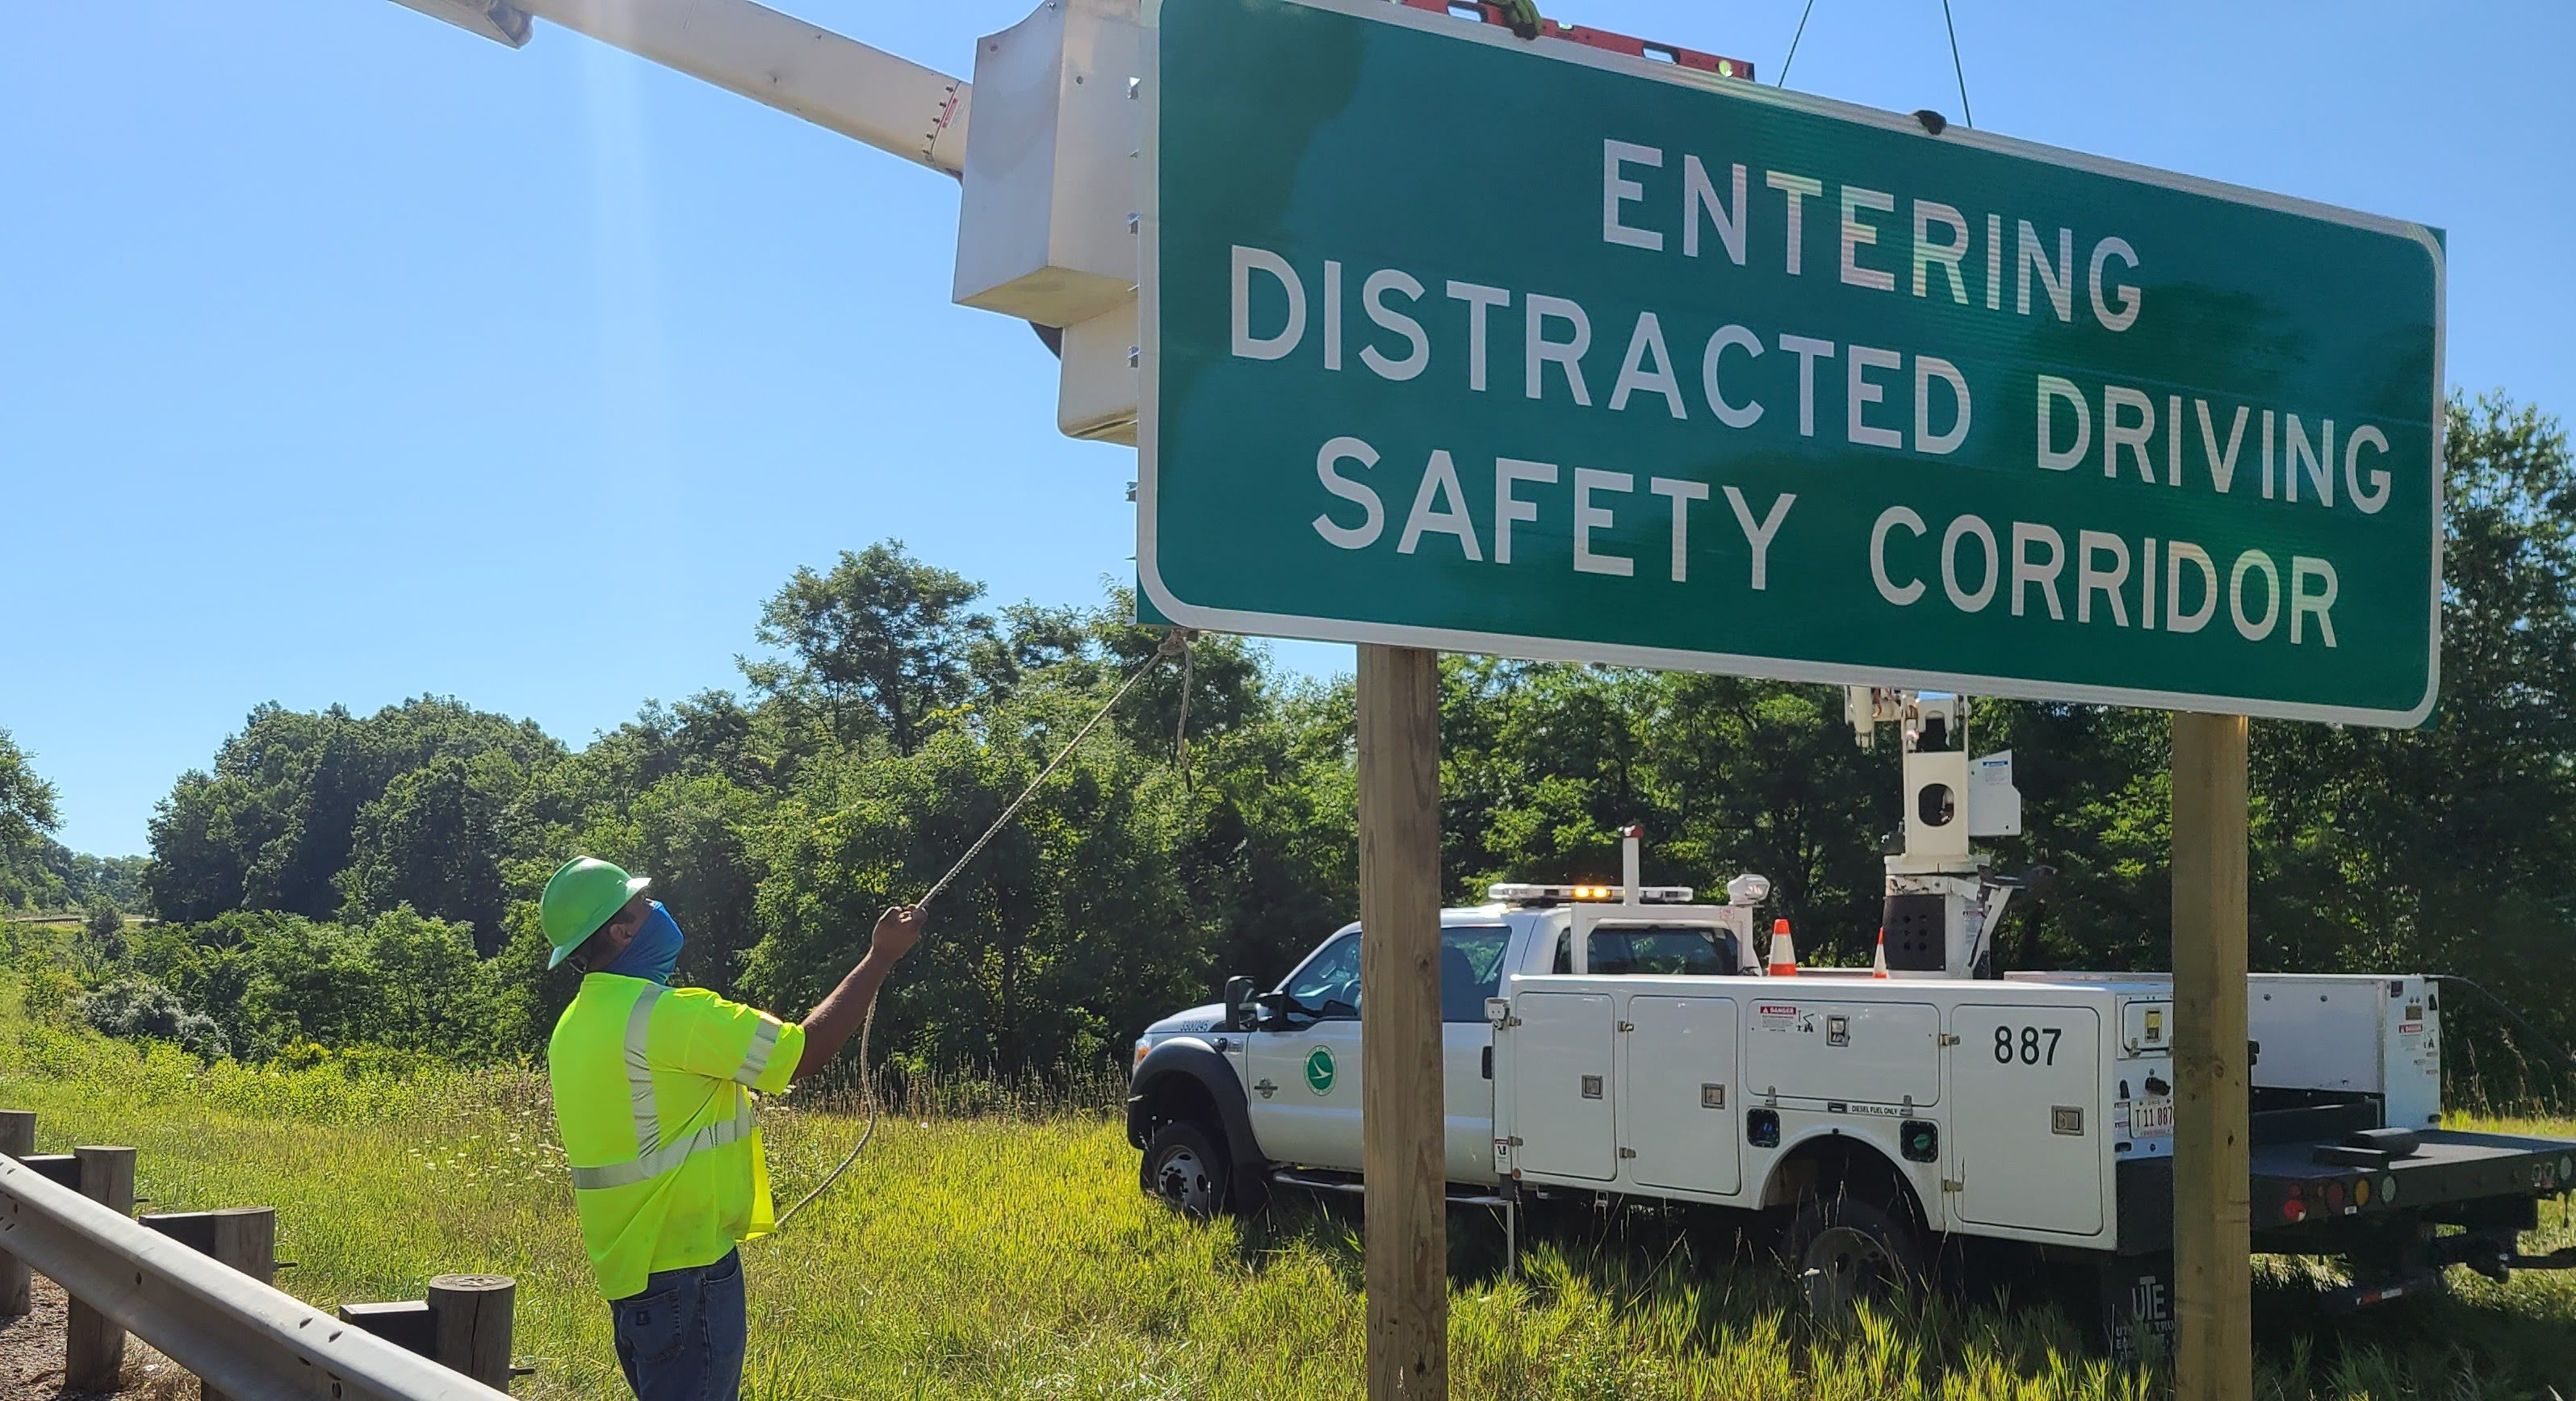 Image of Ohio State Highway Patrol & ODOT announce distracted driving safety corridor